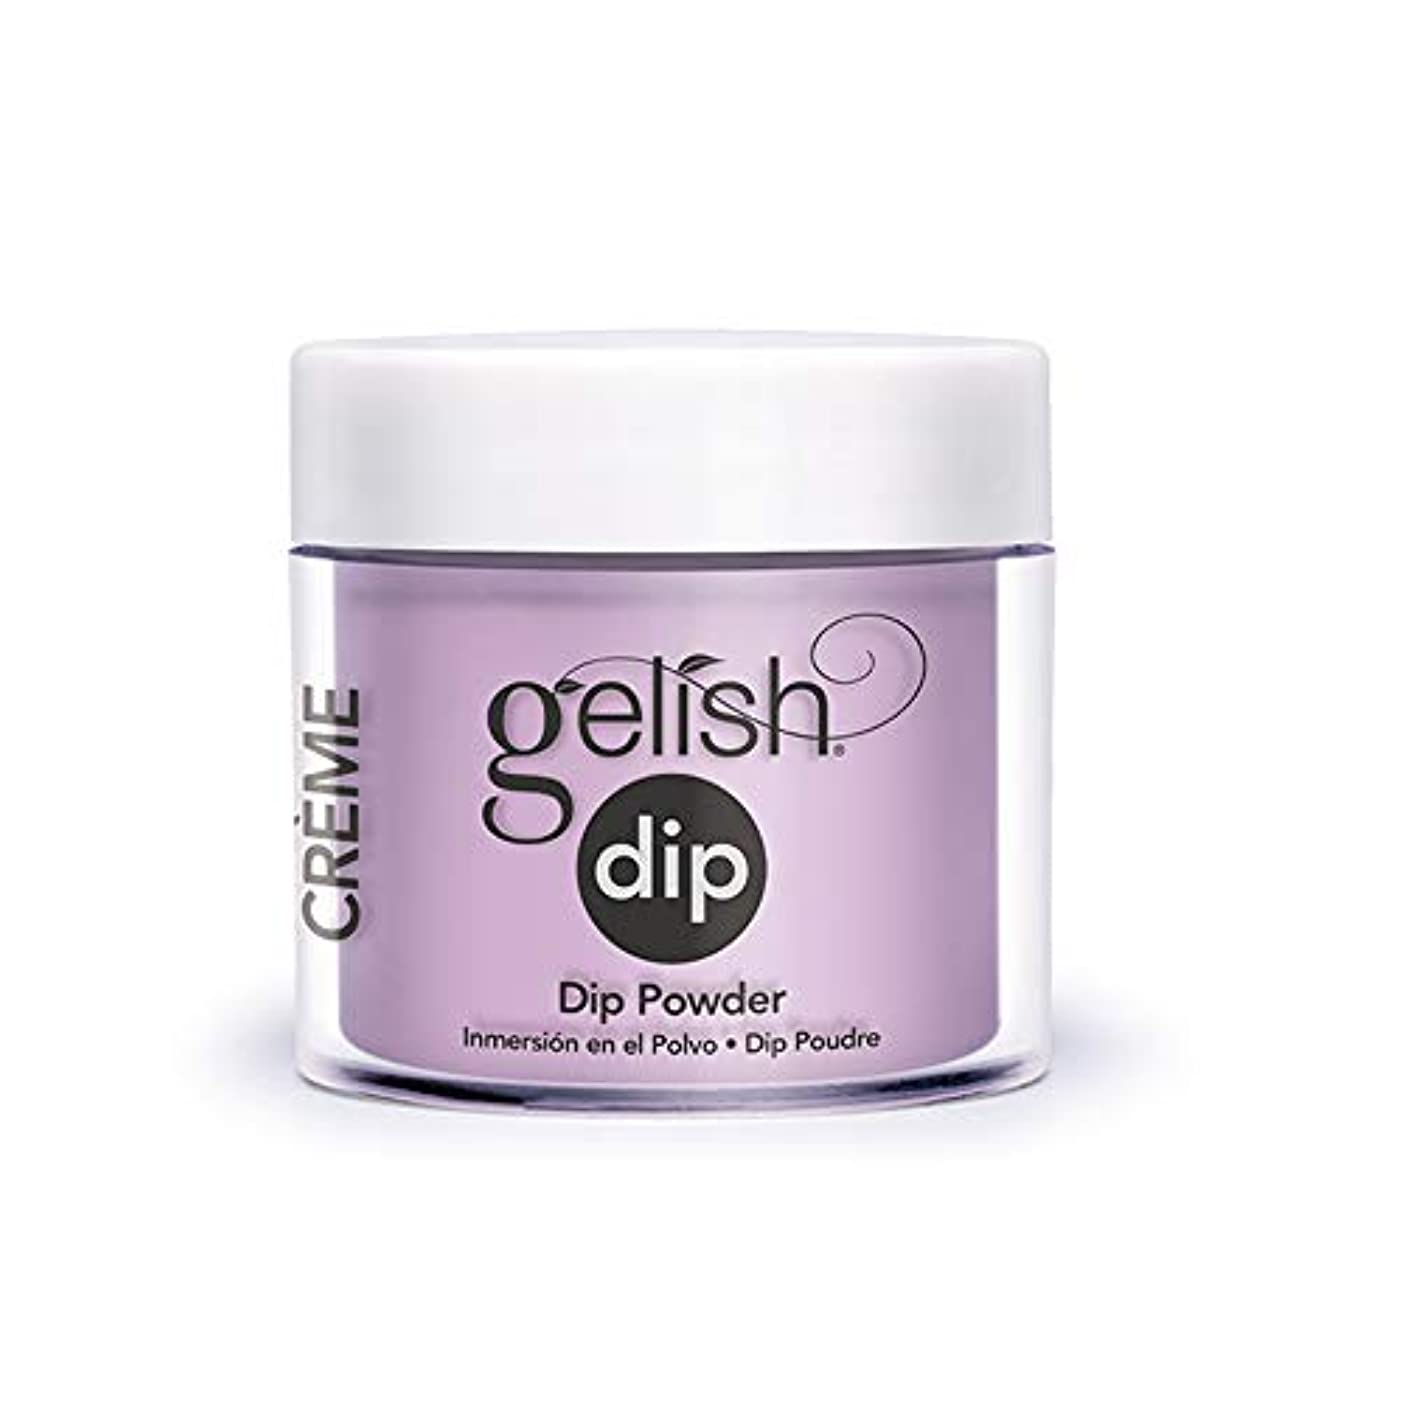 Harmony Gelish - Acrylic Dip Powder - Invitation Only - 23g / 0.8oz